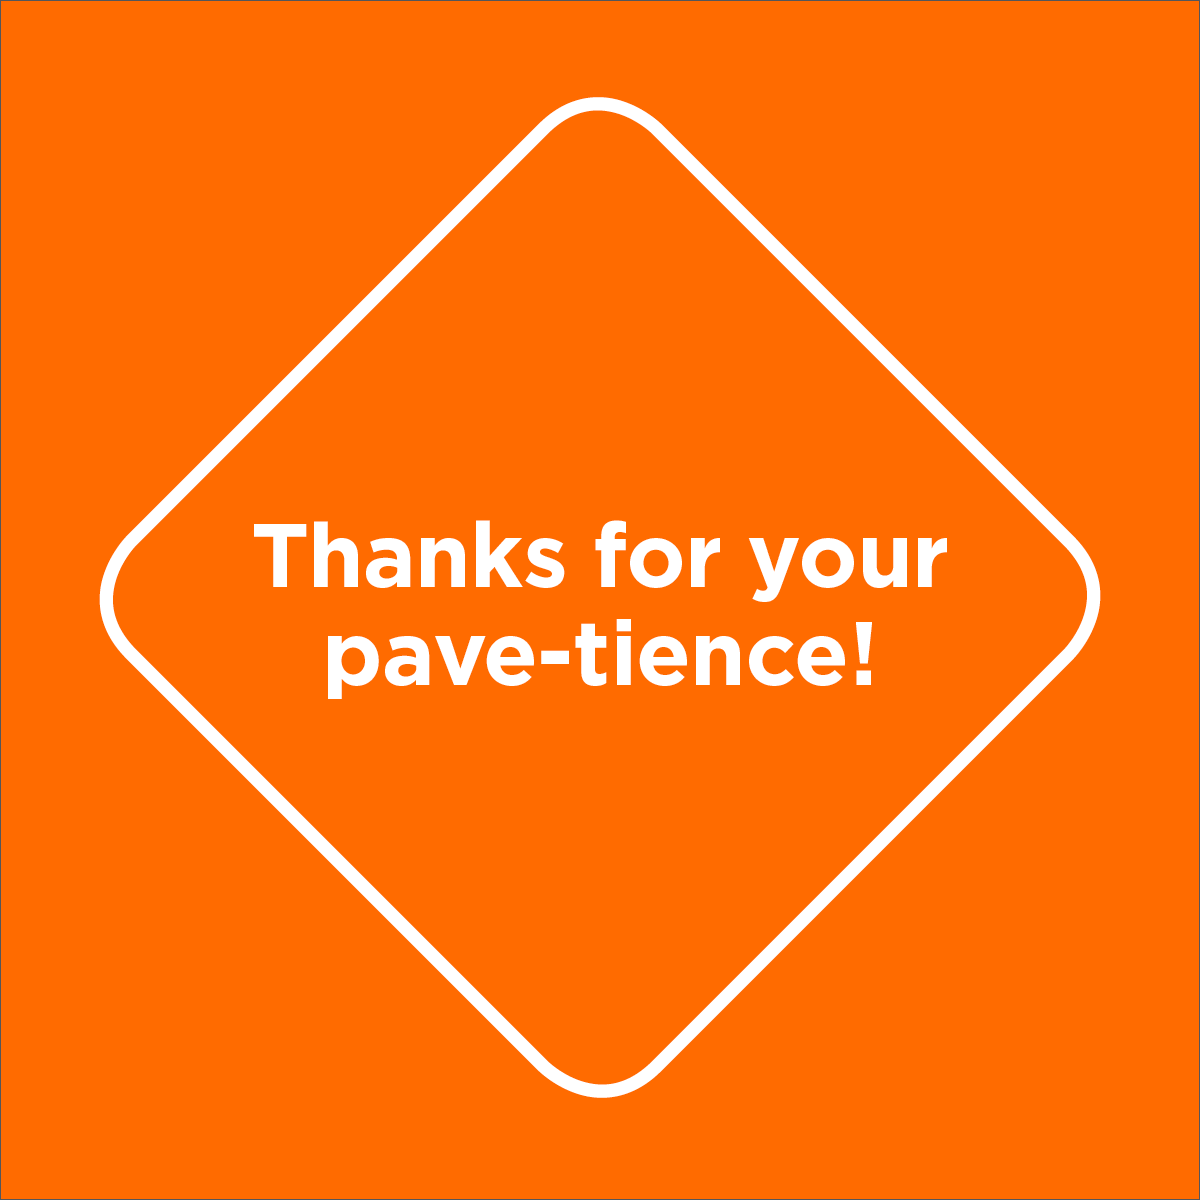 Thanks for your pave-tience